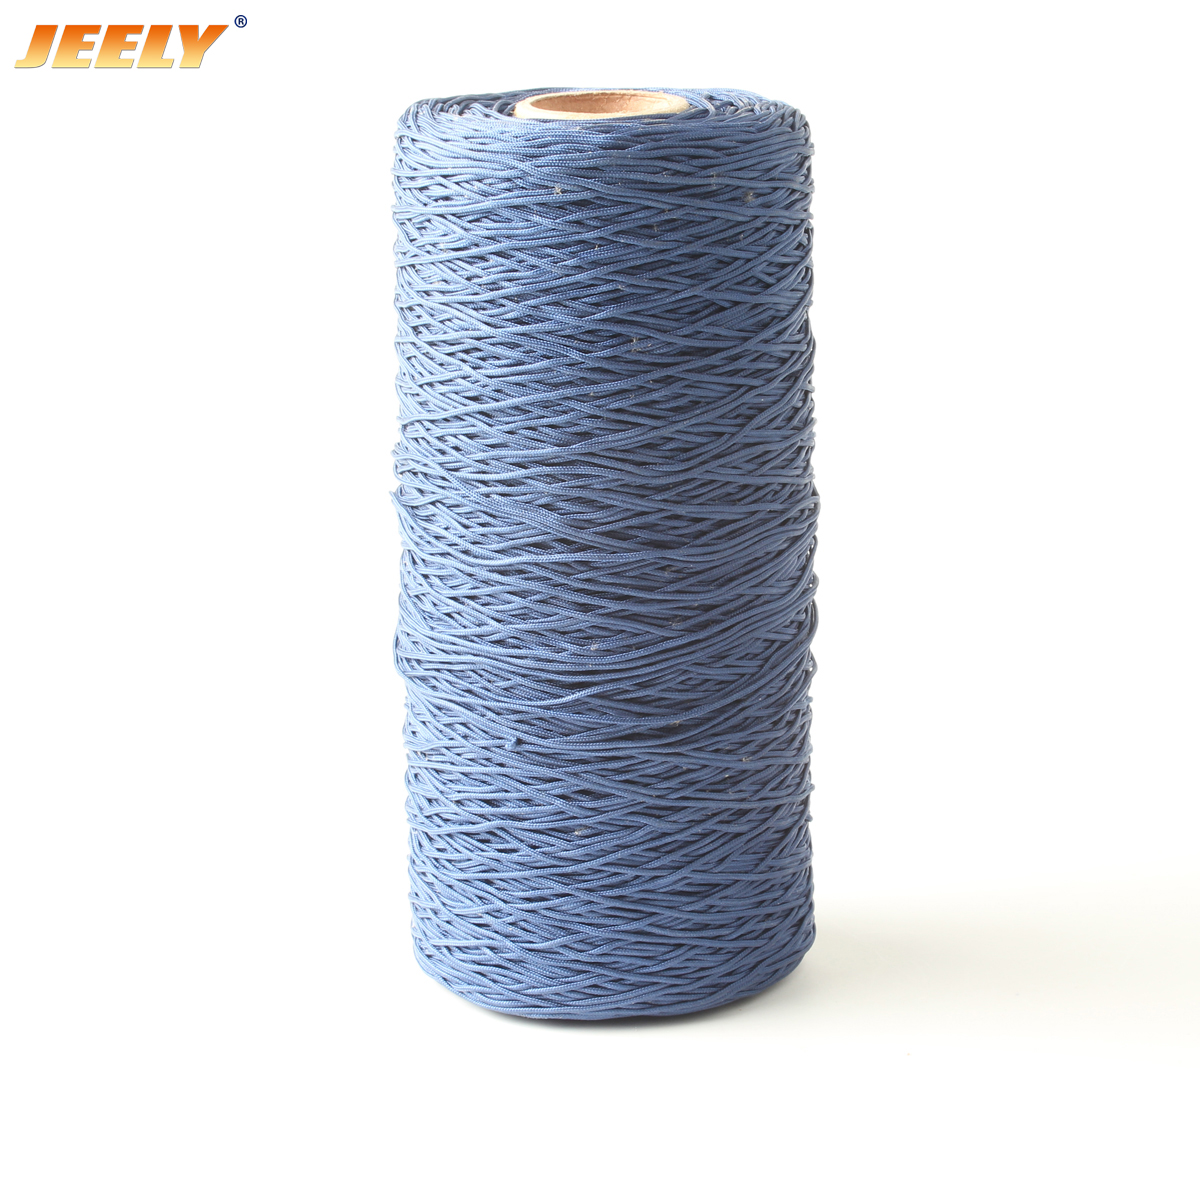 1.4mm UHMWPE Core with Polyester Jacket 16/24/32 Strands Round Stiff Version Cord